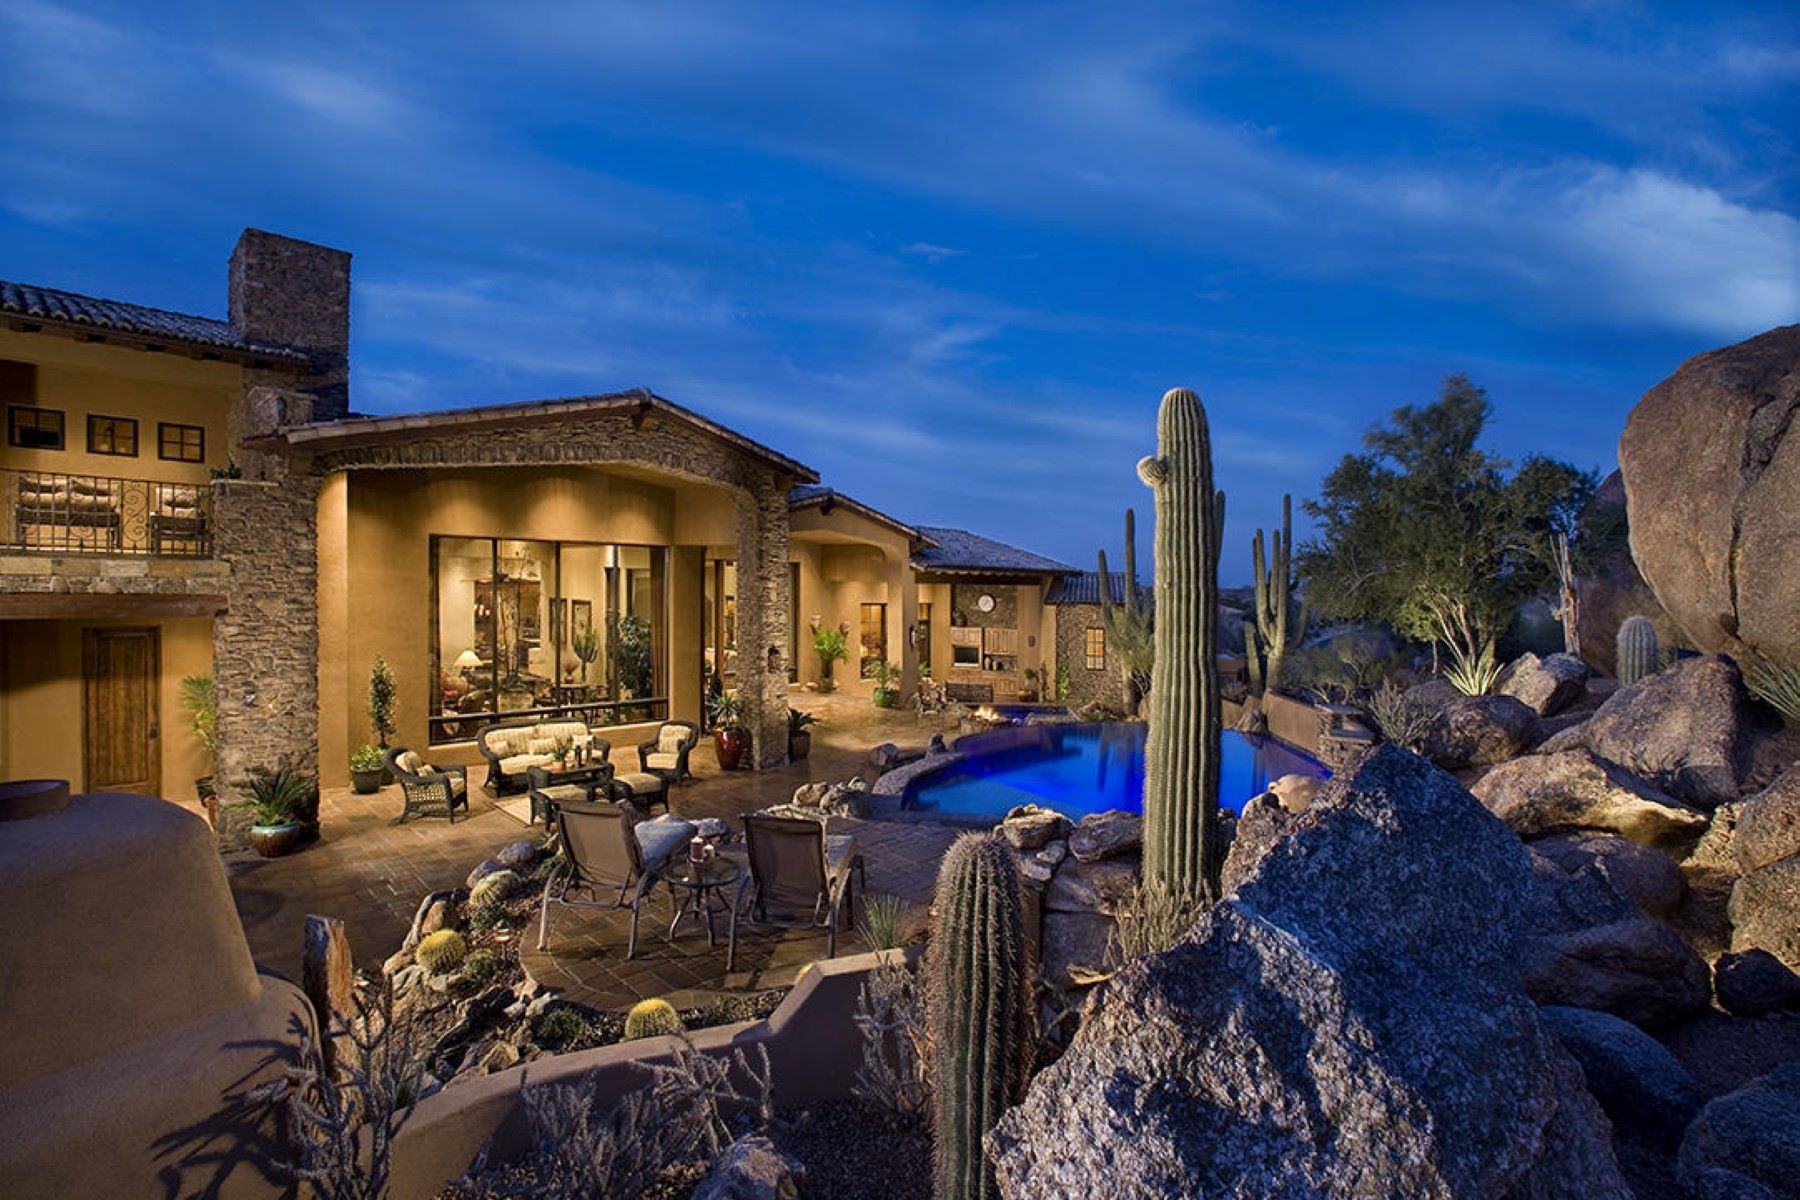 Single Family Home for Sale at Beautiful Spanish home in Troon Ridge Estates 24280 N 112th Pl Scottsdale, Arizona, 85255 United States